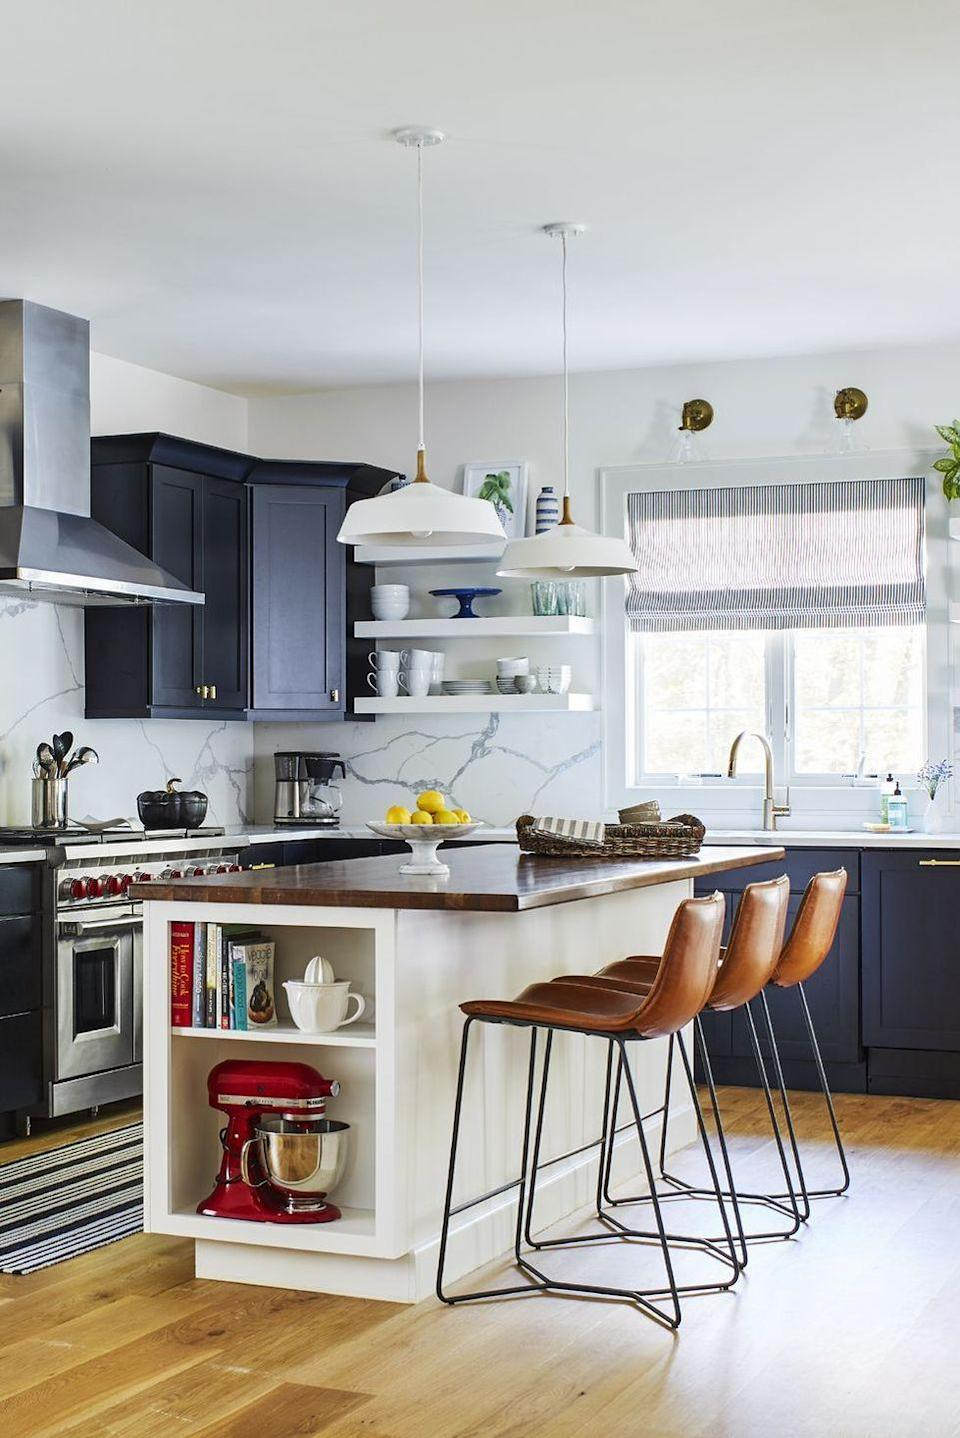 "<p>In chef <a href=""https://www.goodhousekeeping.com/beauty/fashion/g4337/katie-lee-summer-fashion-entertaining-recipes/"" rel=""nofollow noopener"" target=""_blank"" data-ylk=""slk:Katie Lee's"" class=""link rapid-noclick-resp"">Katie Lee's</a> Hamptons kitchen, a soft blue tile backsplash complements the white cabinets and the sunny view. </p>"